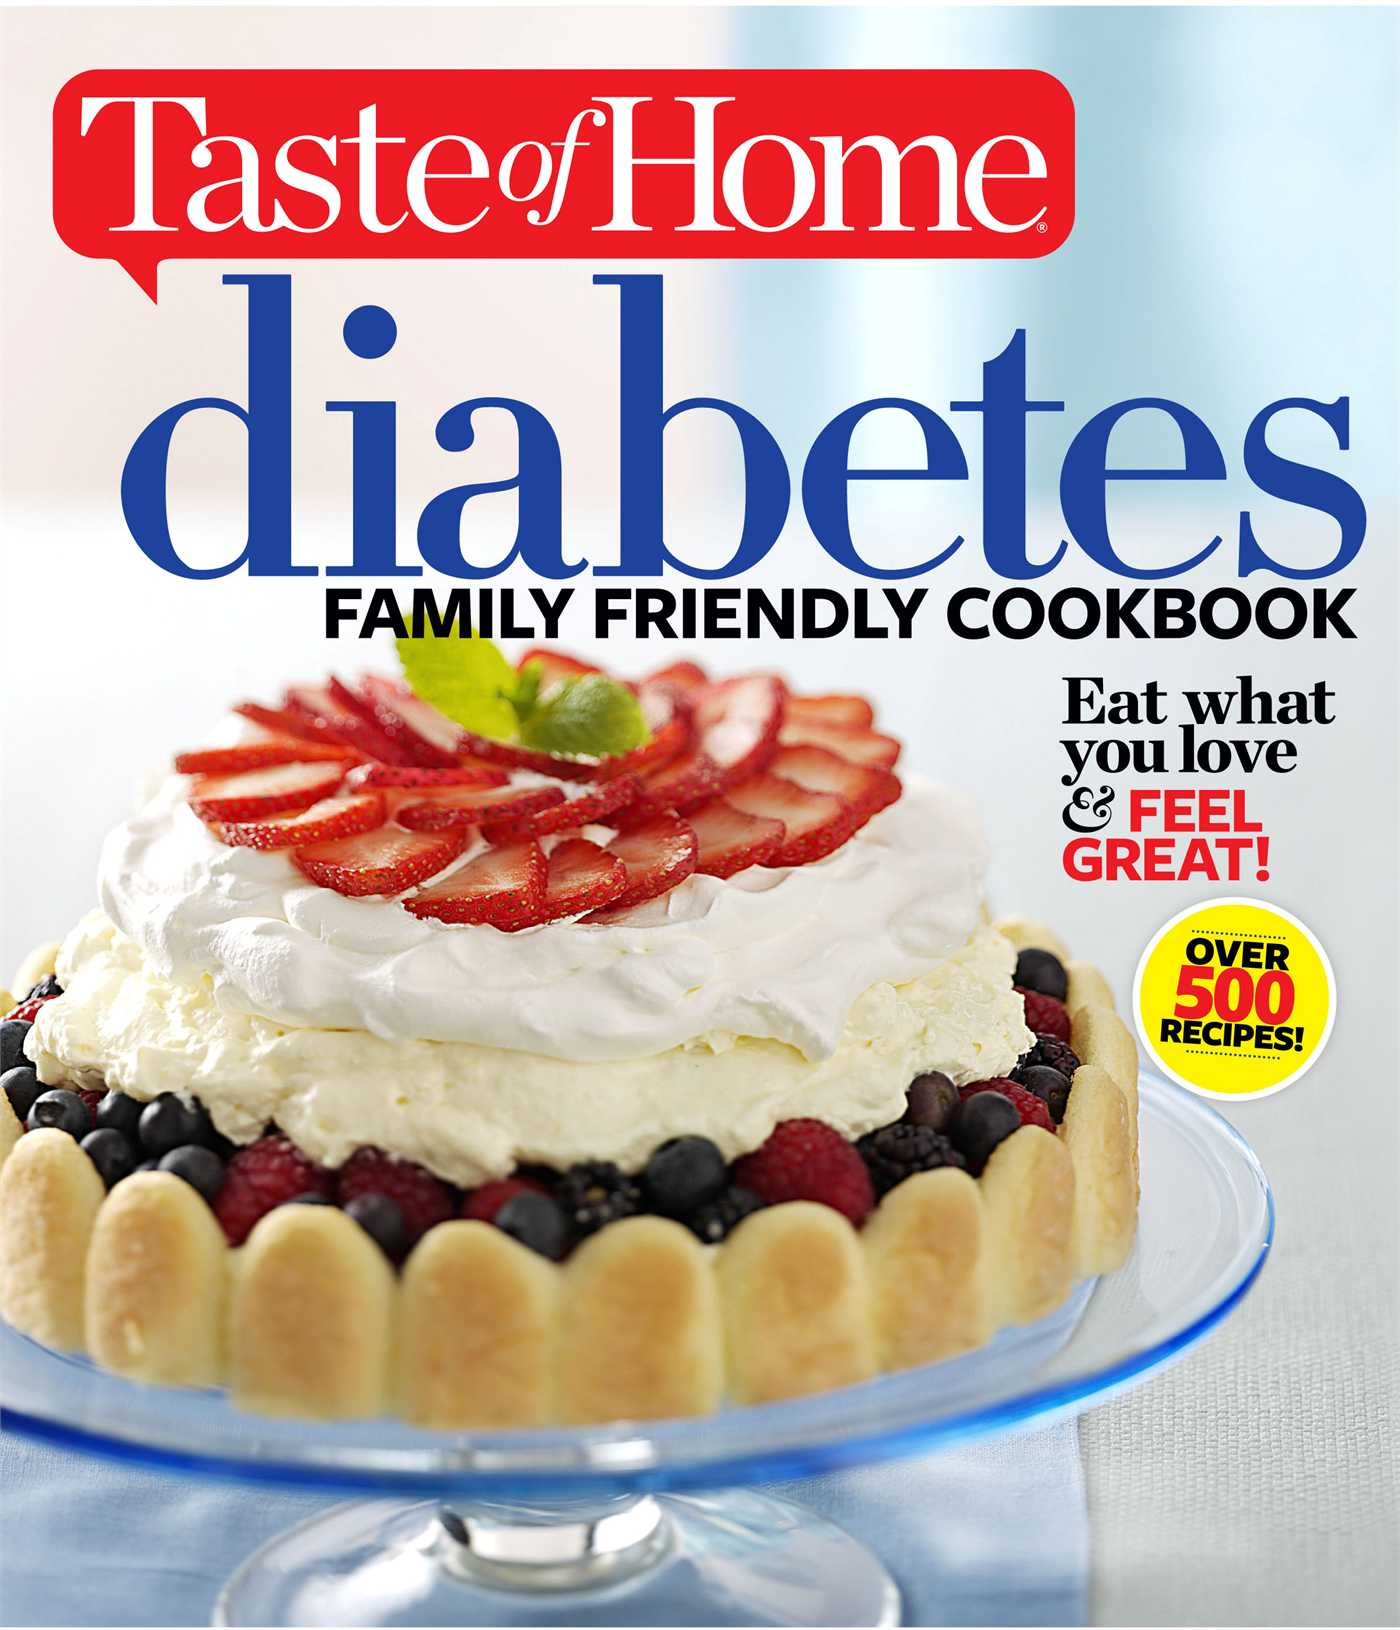 Taste-of-home-diabetes-family-friendly-cookbook-9781617652660_hr